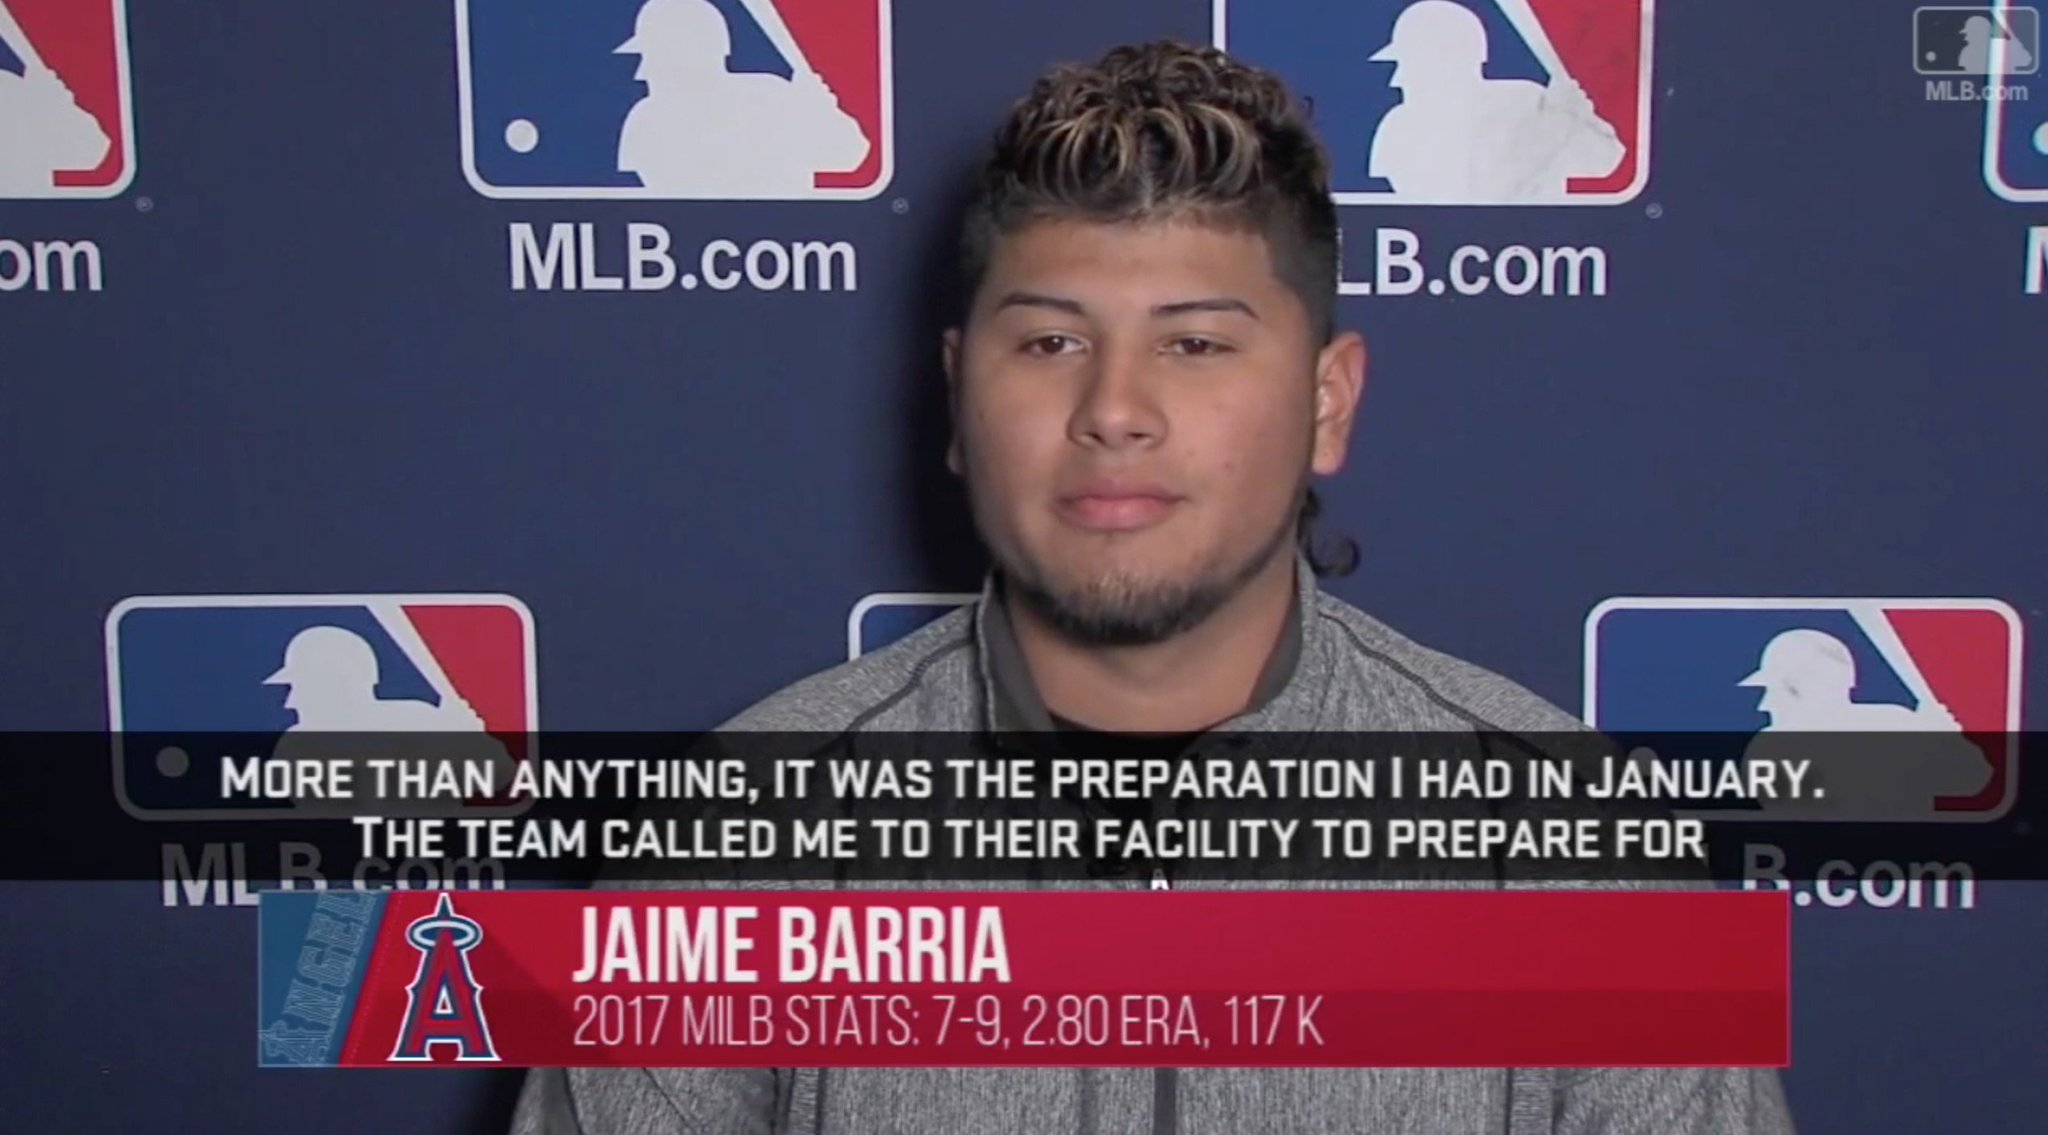 #Angels prospect Jaime Barria is ready to face new challenges at #LAASpring. https://t.co/FzJBUNUyro